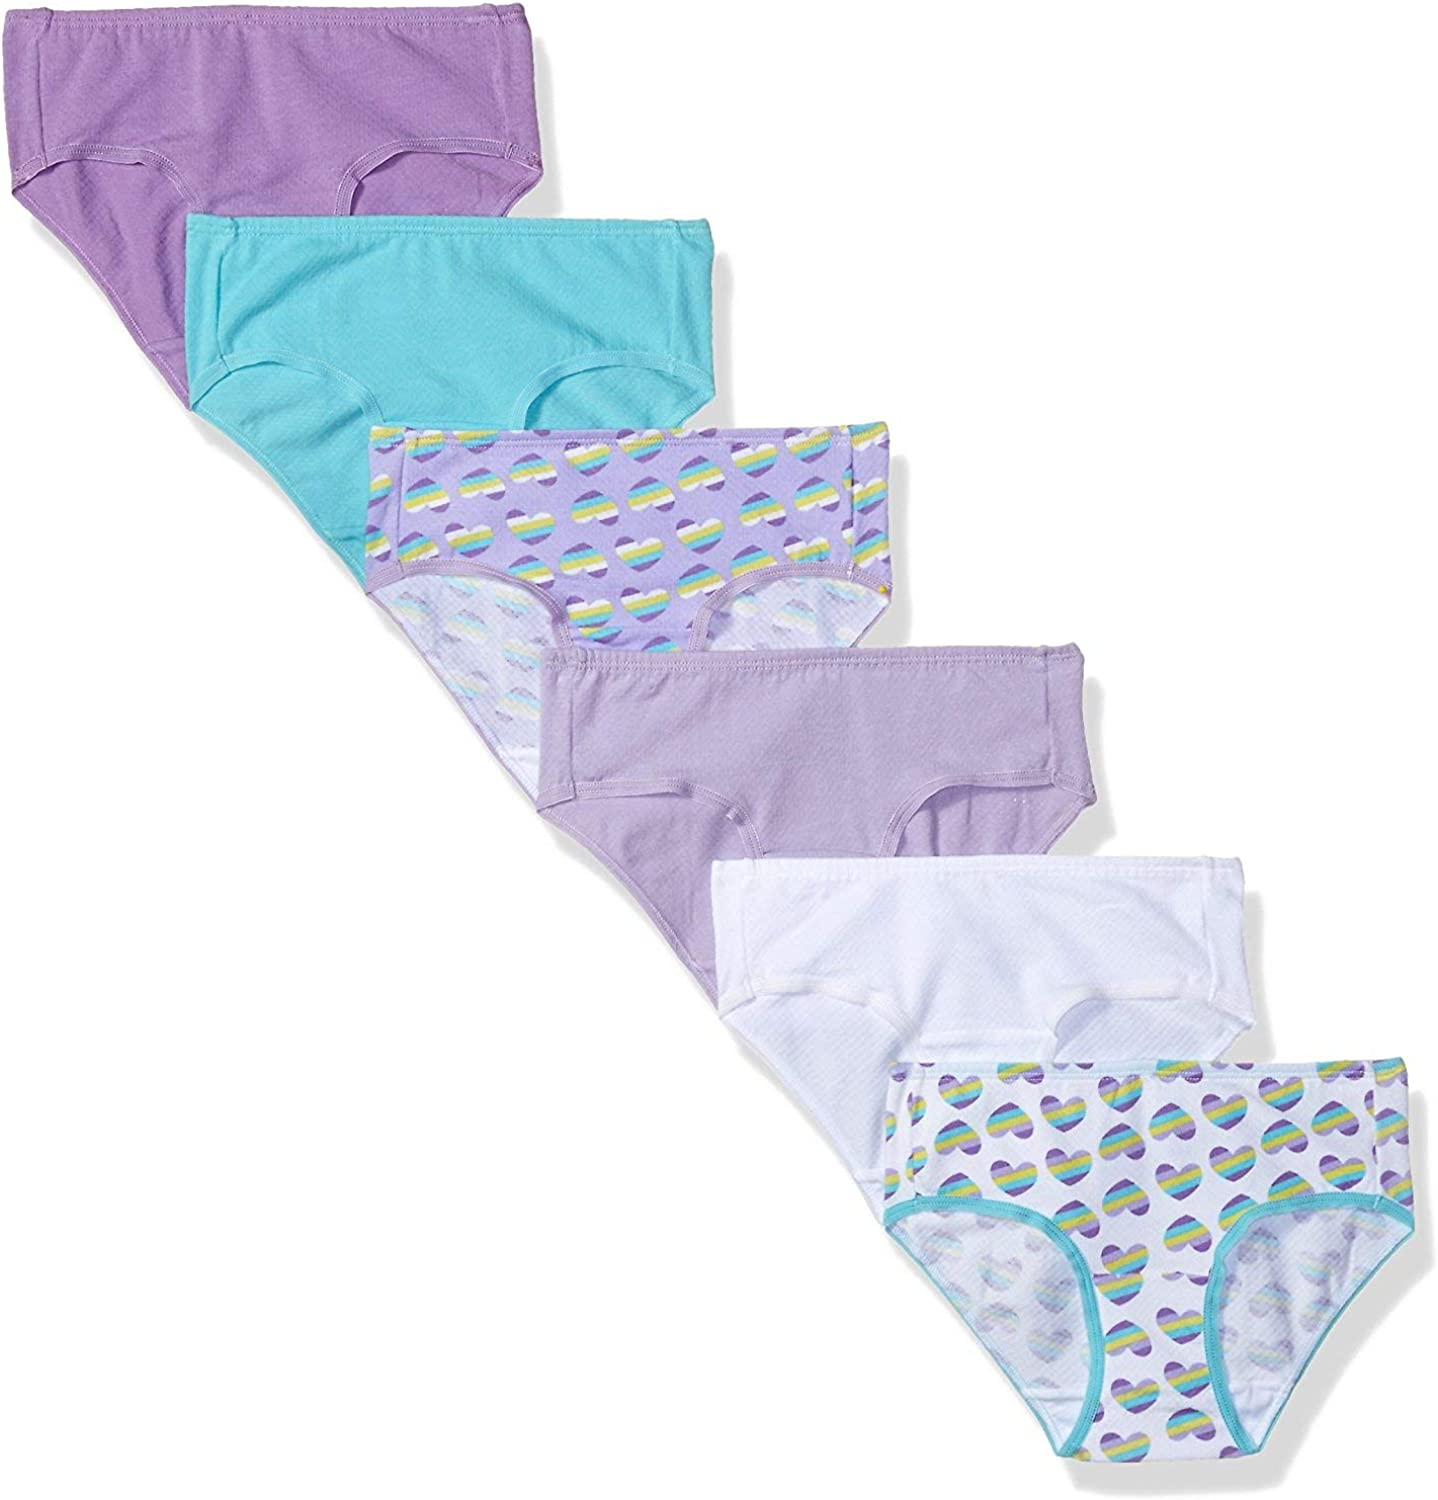 NWT Fruit of the Loom Girl/'s Cotton Briefs 12-Pack Varied Colors Tag Free Sz 14